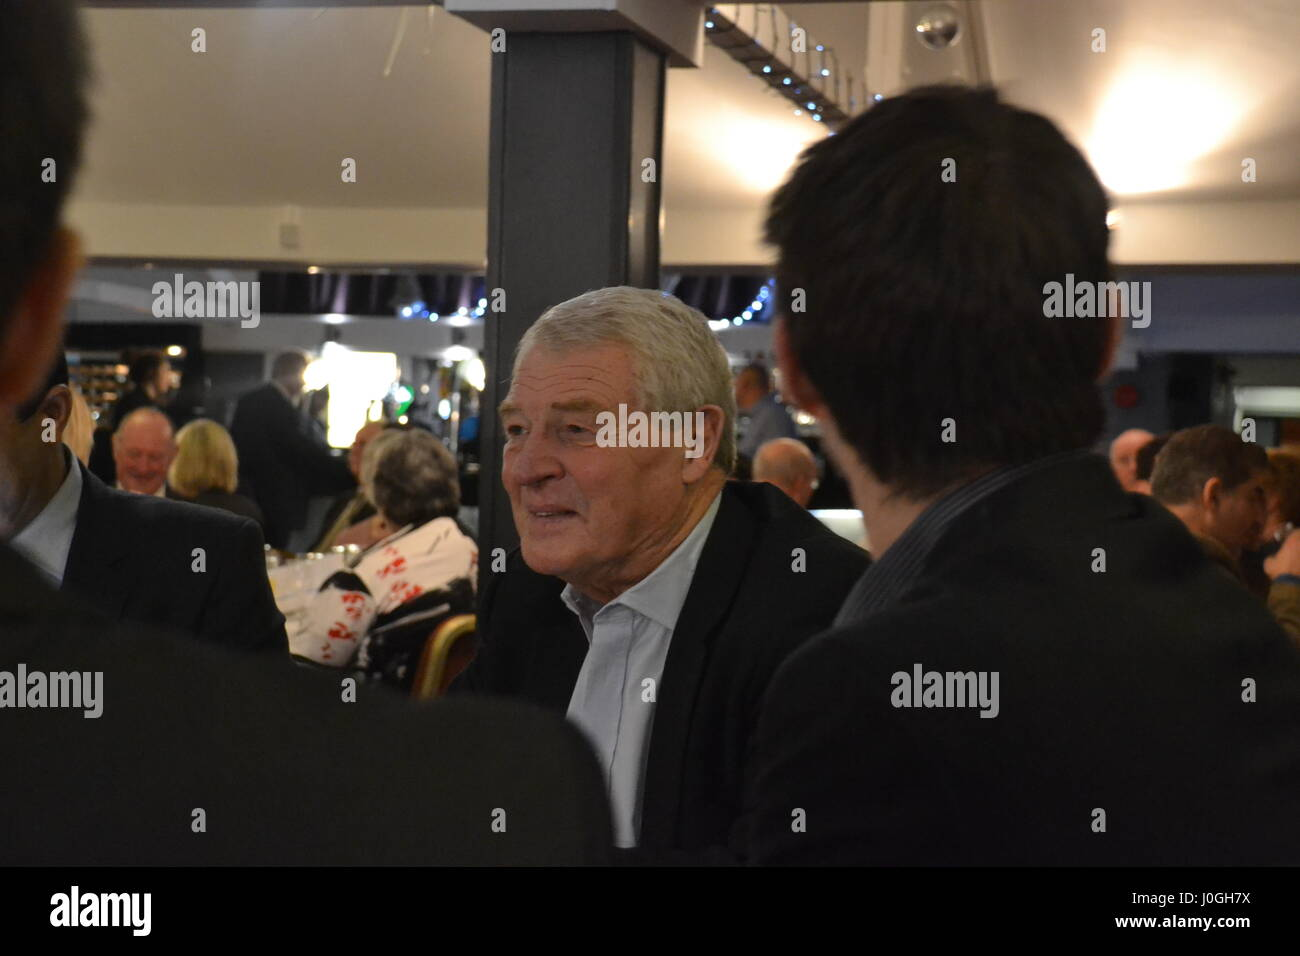 Lord Paddy Ashdown, former MP and leader of the Liberal Democrats supports John Leech's re-election campaign in Stock Photo